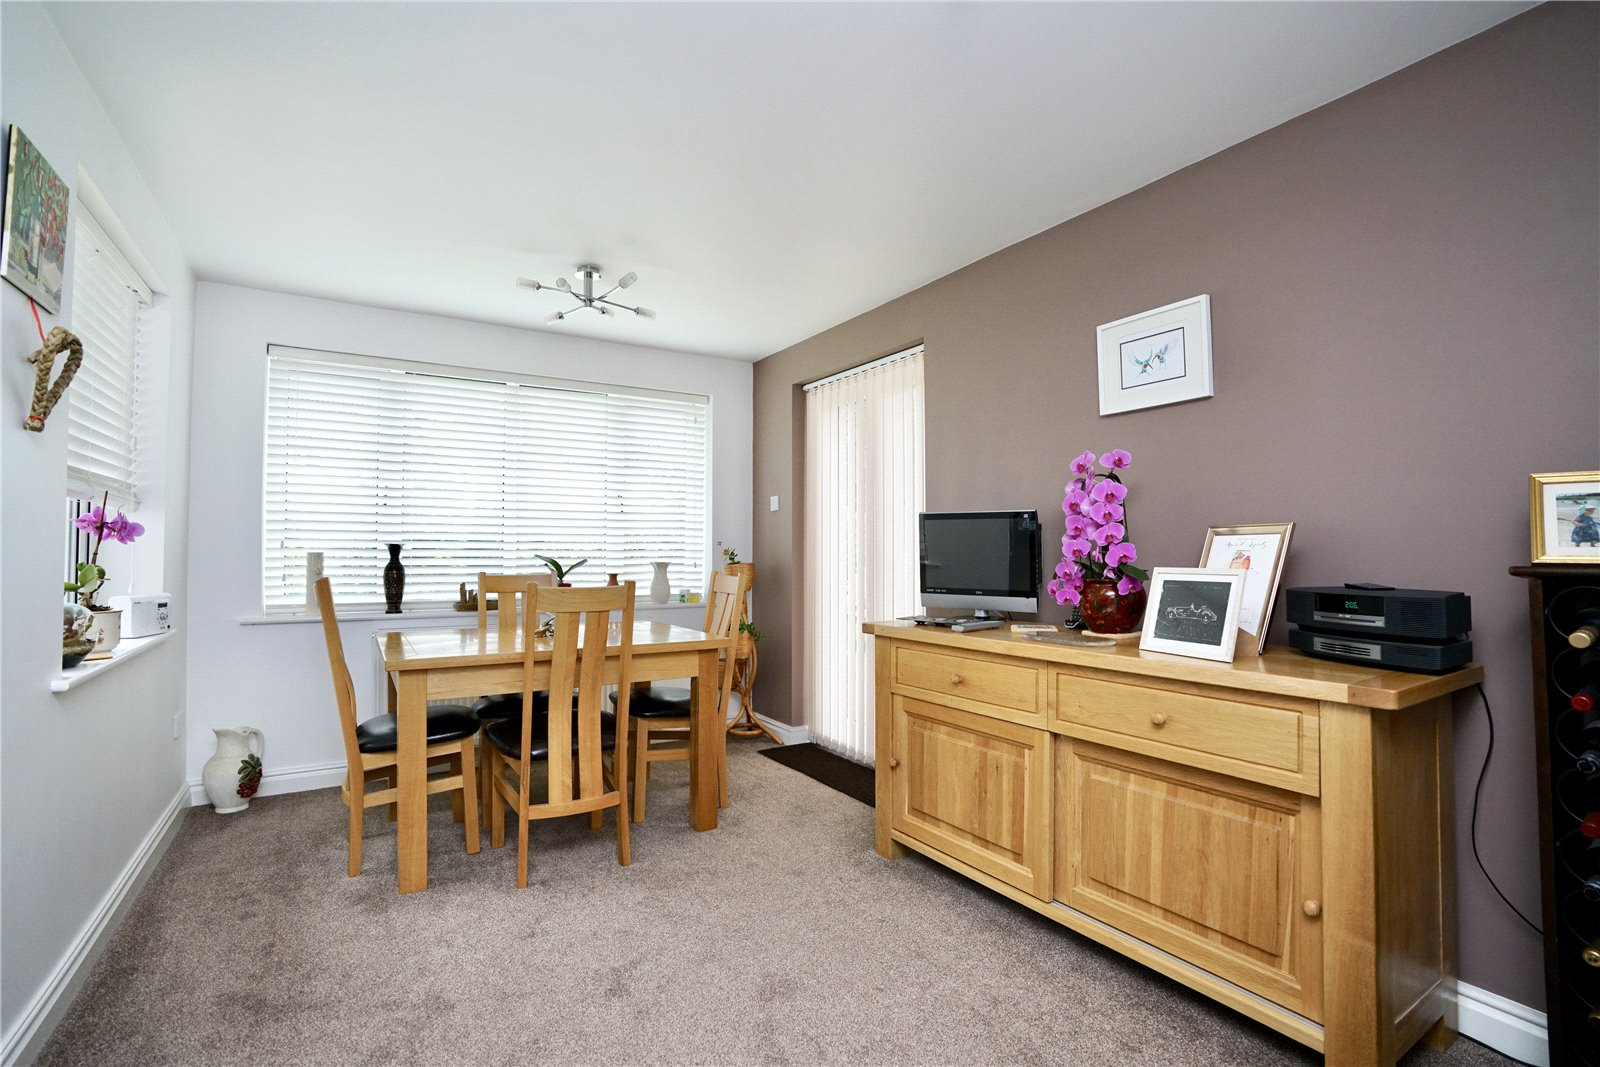 4 bed house for sale in Great Gransden  - Property Image 5